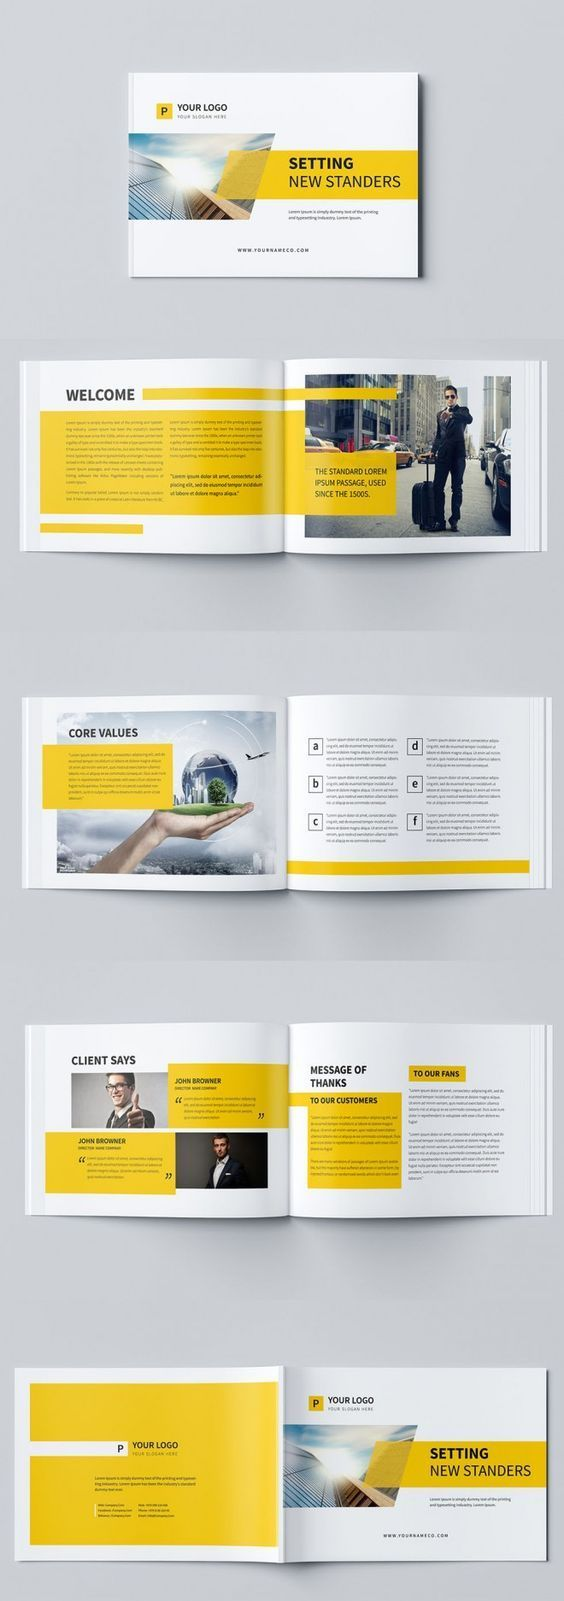 17 best images about top pharmacy brochure designs on for Pharmacy brochure template